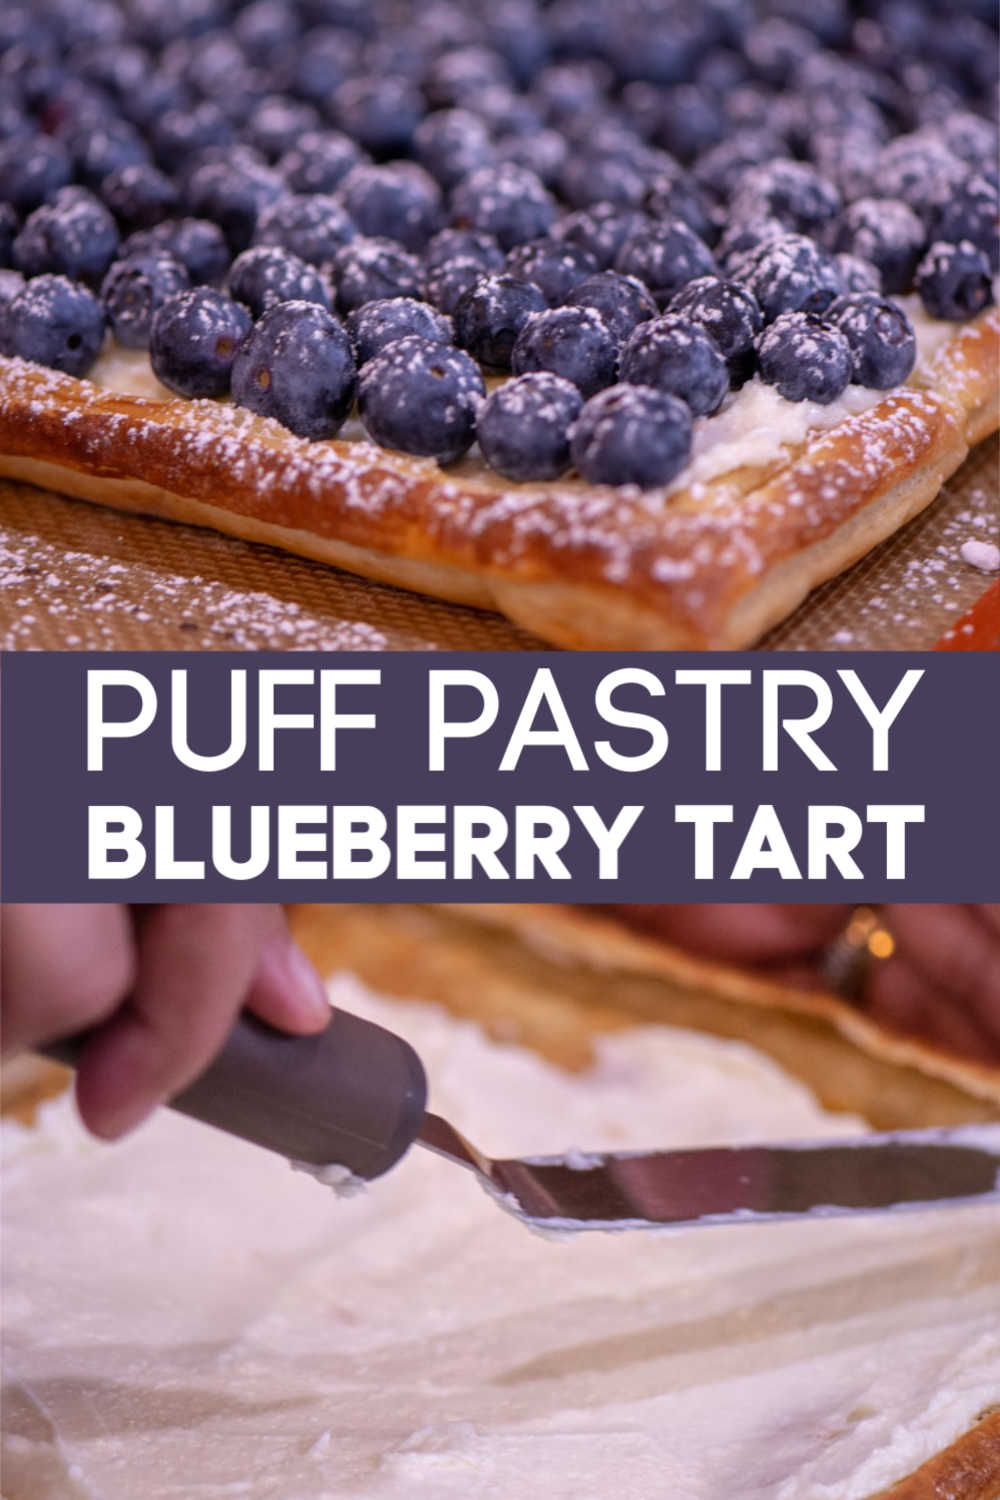 Quick and Easy Puff Pastry Blueberry Tart When You Need to Impress Guests! {WW 8 Points, Vegetarian}